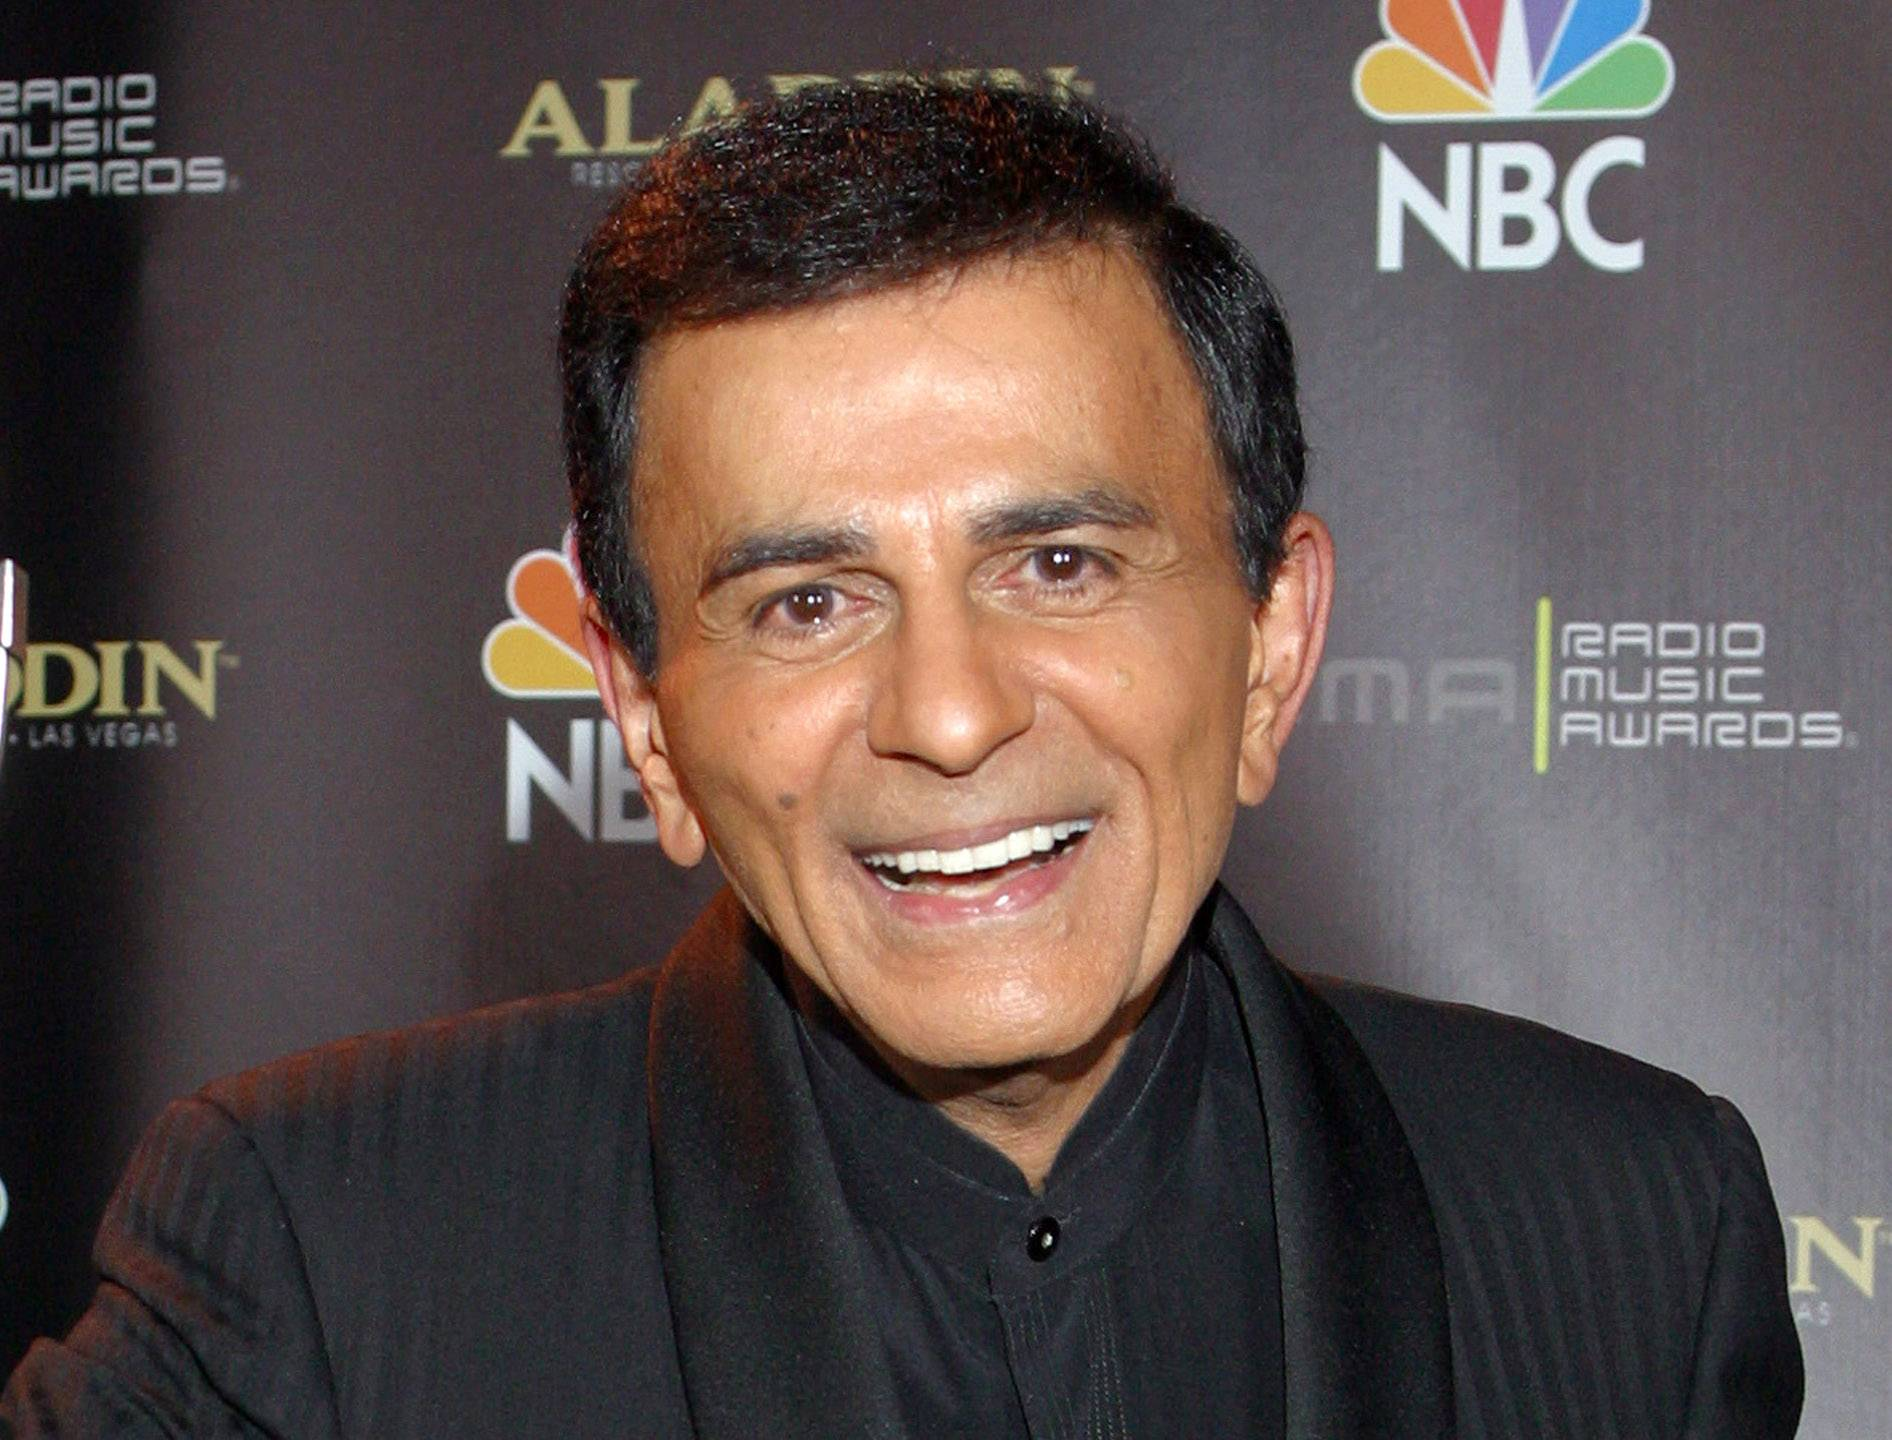 In this file photo, Casey Kasem poses for photographers after receiving the Radio Icon award during The 2003 Radio Music Awards at the Aladdin Resort and Casino in Las Vegas. A judge has expanded the powers of Casey Kasem's daughter to determine whether her father is receiving adequate medical care and says he still has concerns about the ailing radio personality's health and welfare. On May 20, Los Angeles Superior Court Judge Daniel Murphy ordered Kasem's wife to comply with court orders allowing doctors to evaluate her husband, and also be seen by his daughter Kerri.